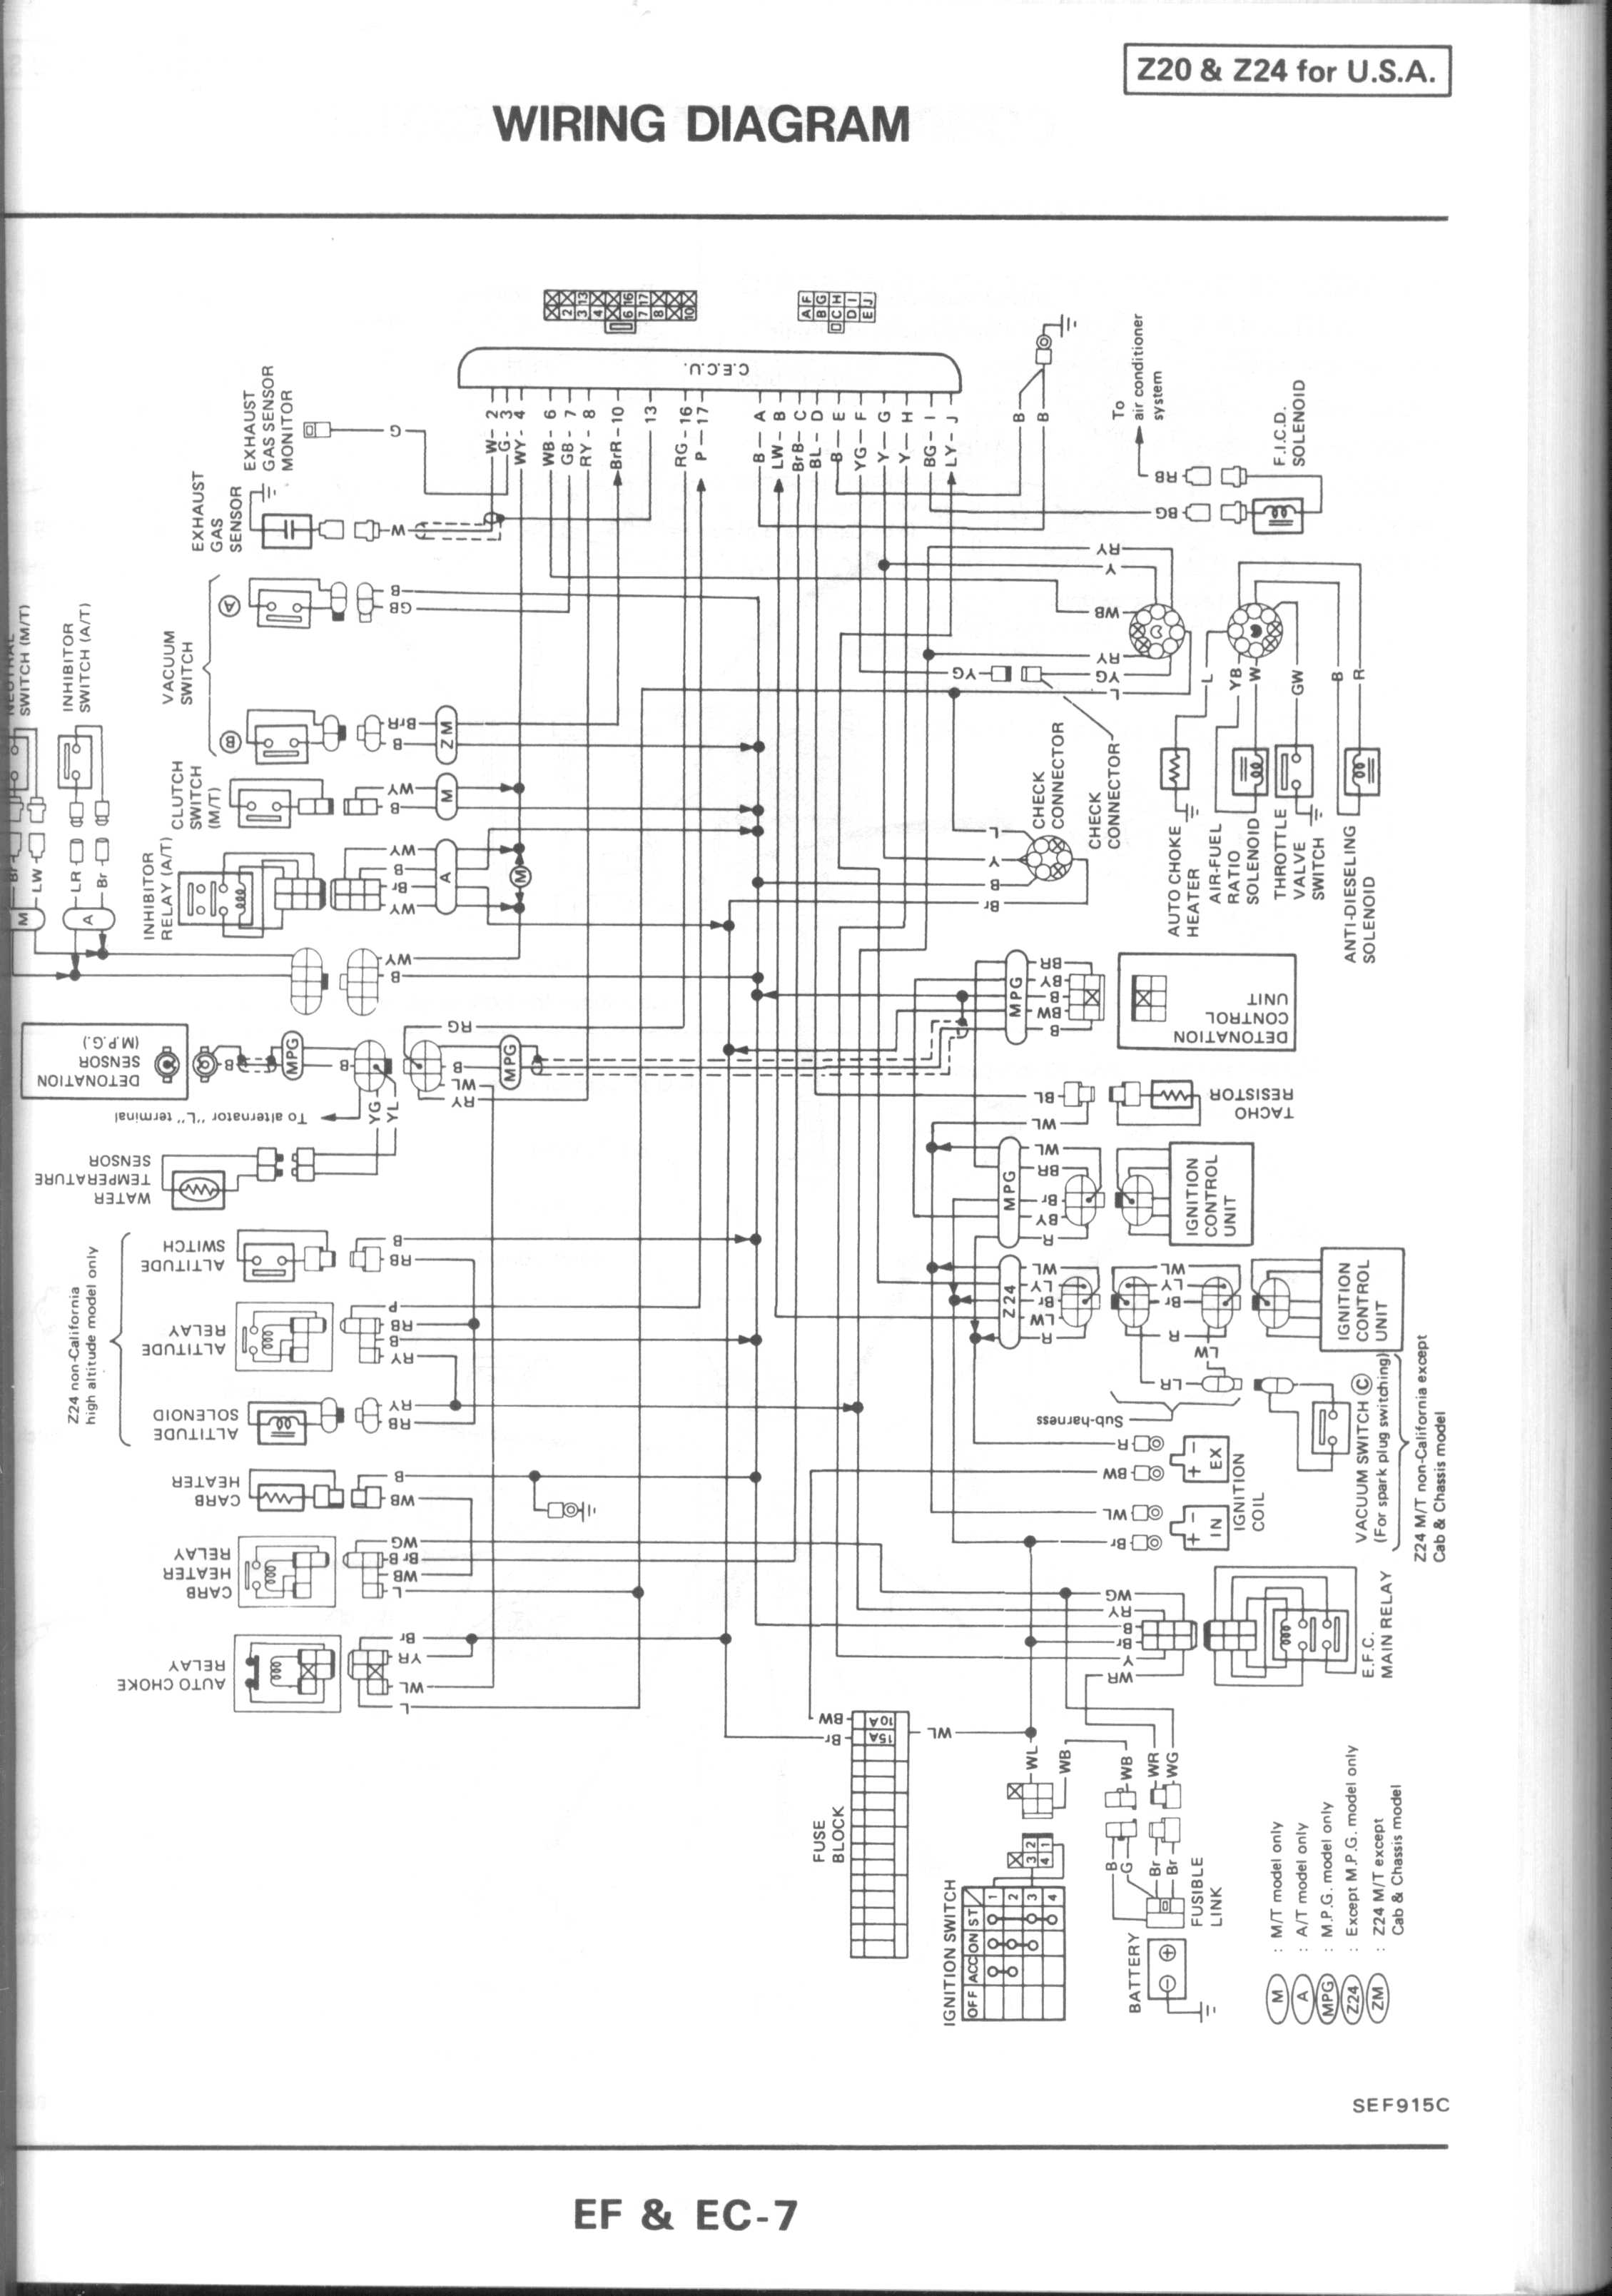 1991 Nissan Wiring Diagram Manual Of Altima Radio Harness 240sx 87 D21 Data Schema Rh Site De Joueurs Com Terrano 300zx